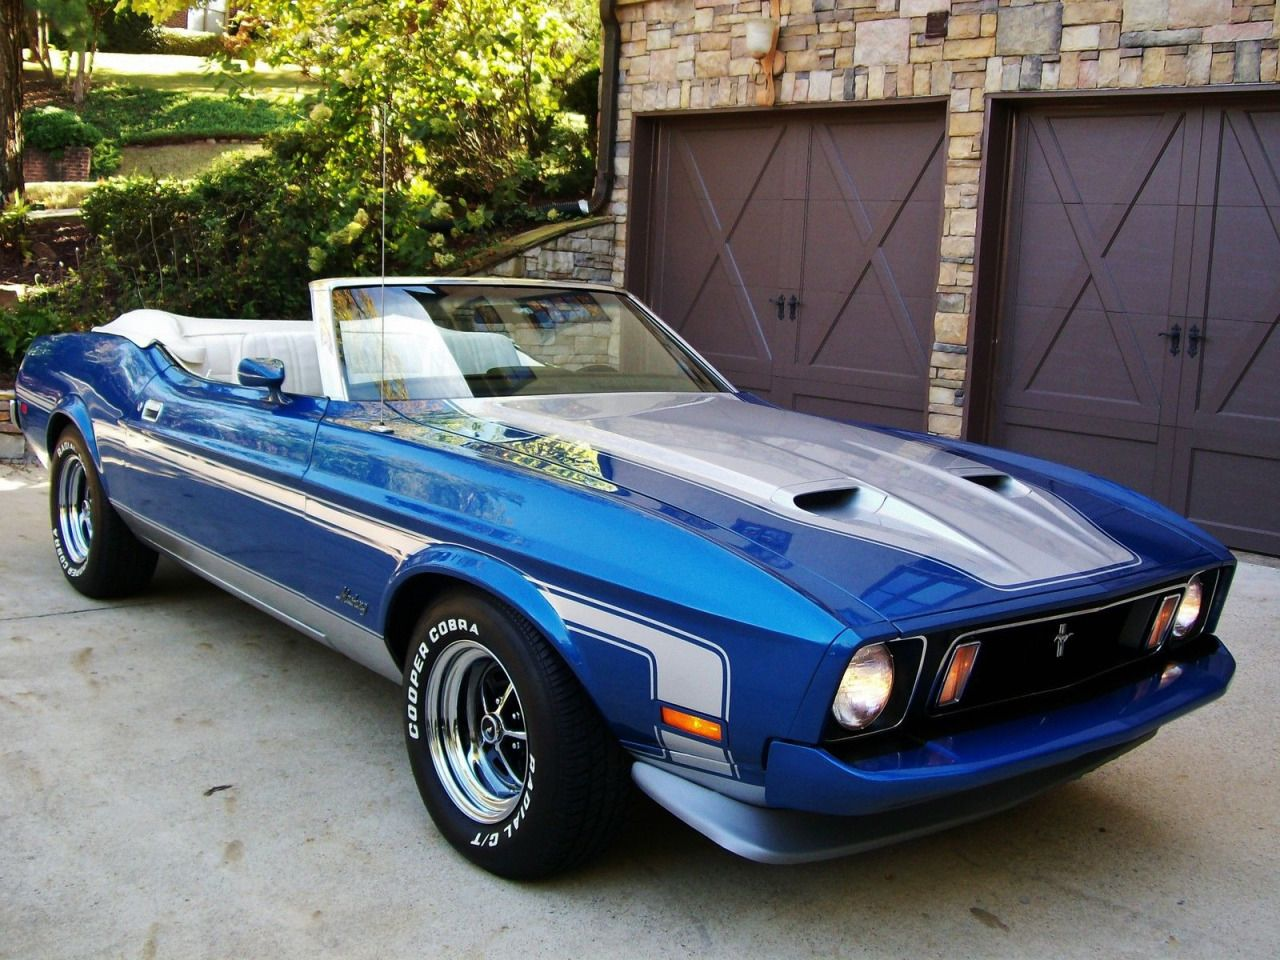 American Muscle Cars Ford Mustang Convertible Q Code